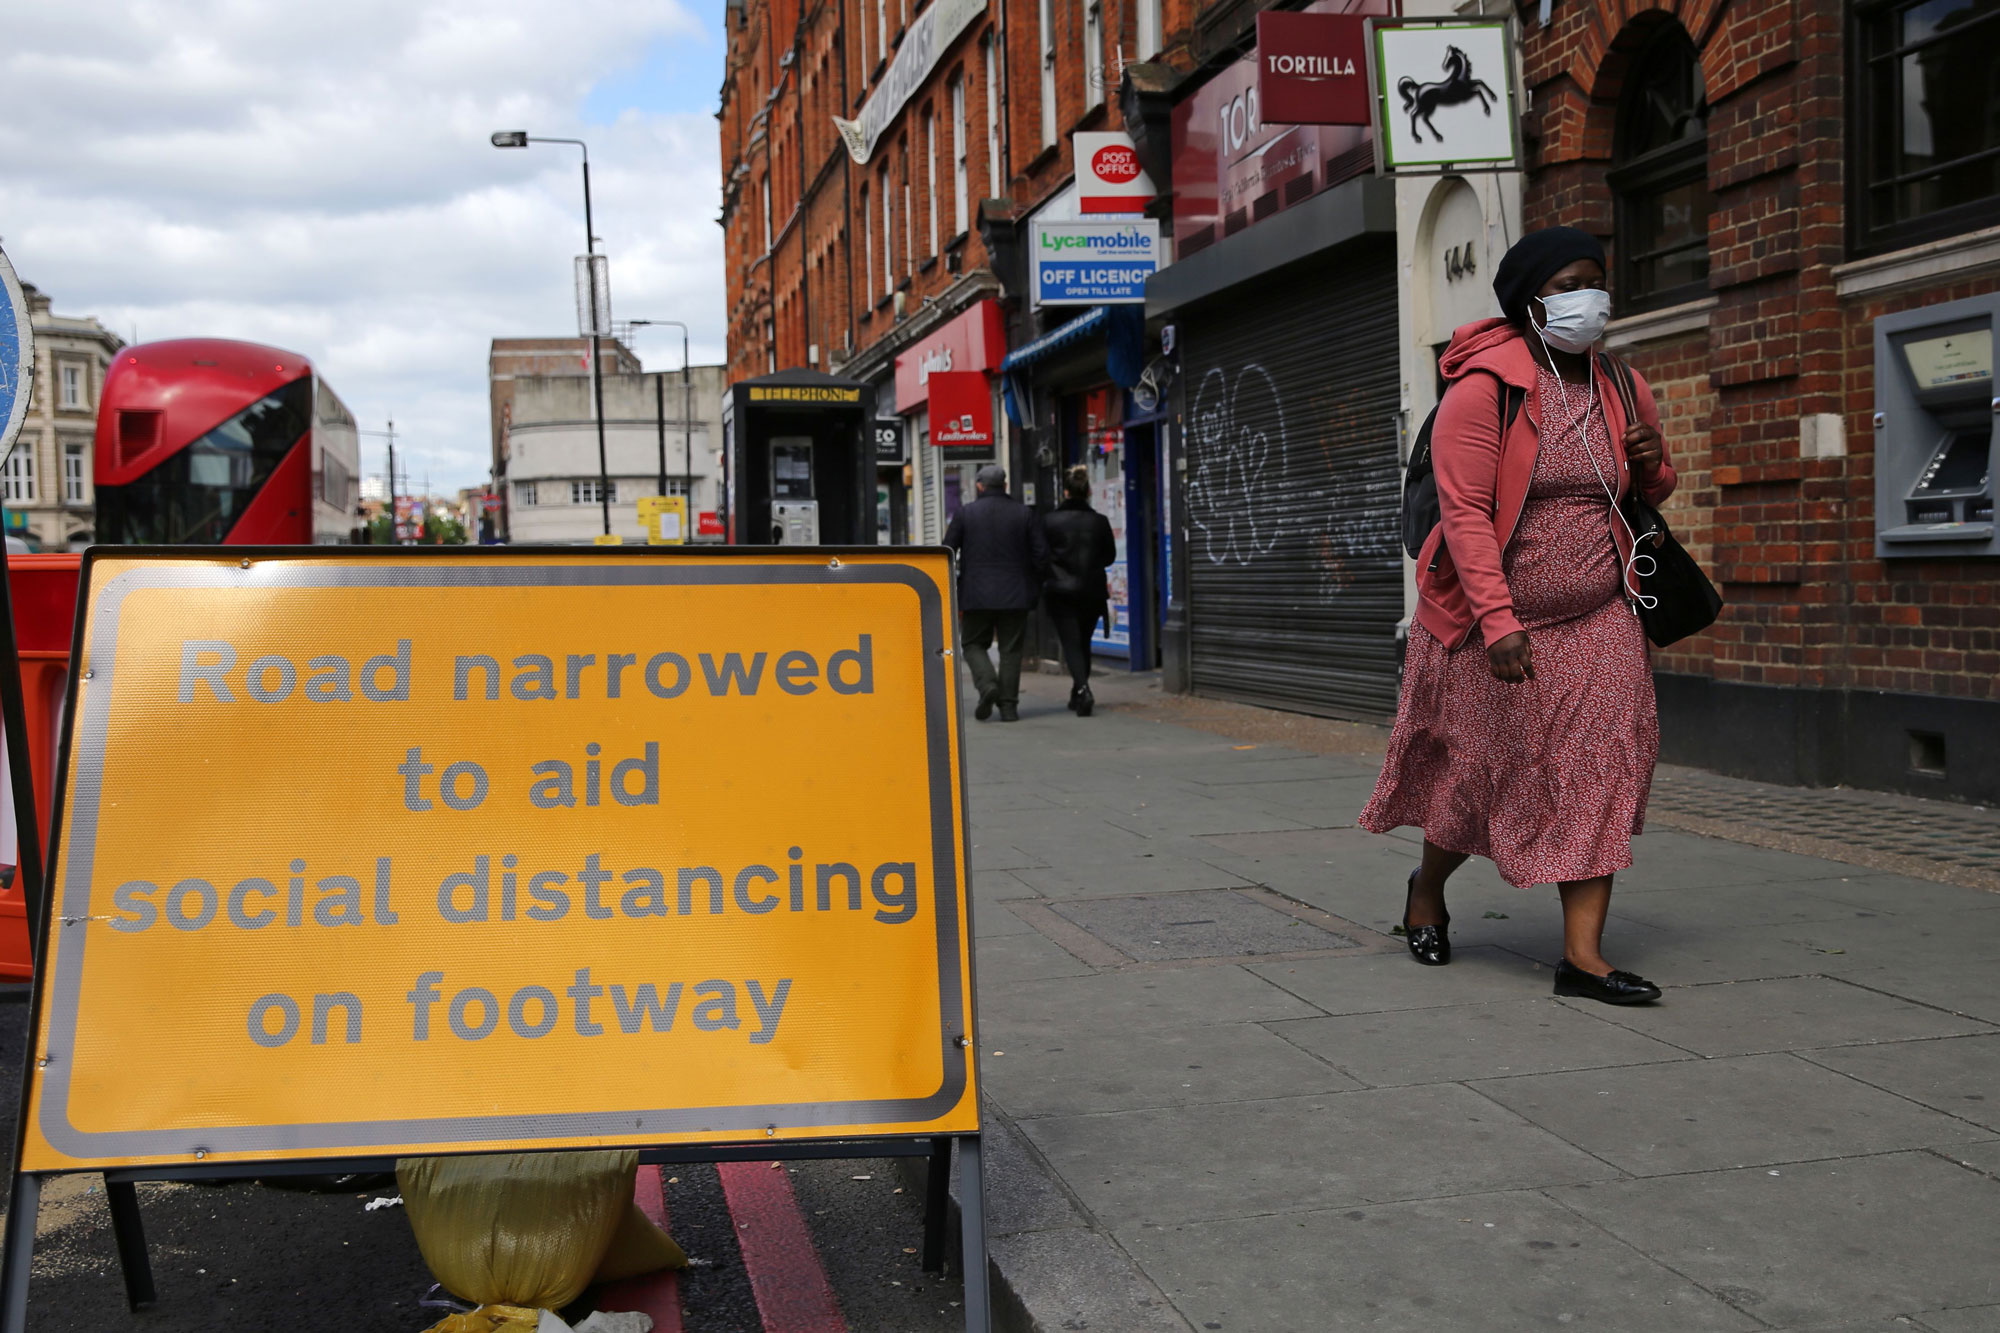 A sign is pictured explaining that the road has been narrowed to aid social distancing when using Camden High Street in central London on May 11.